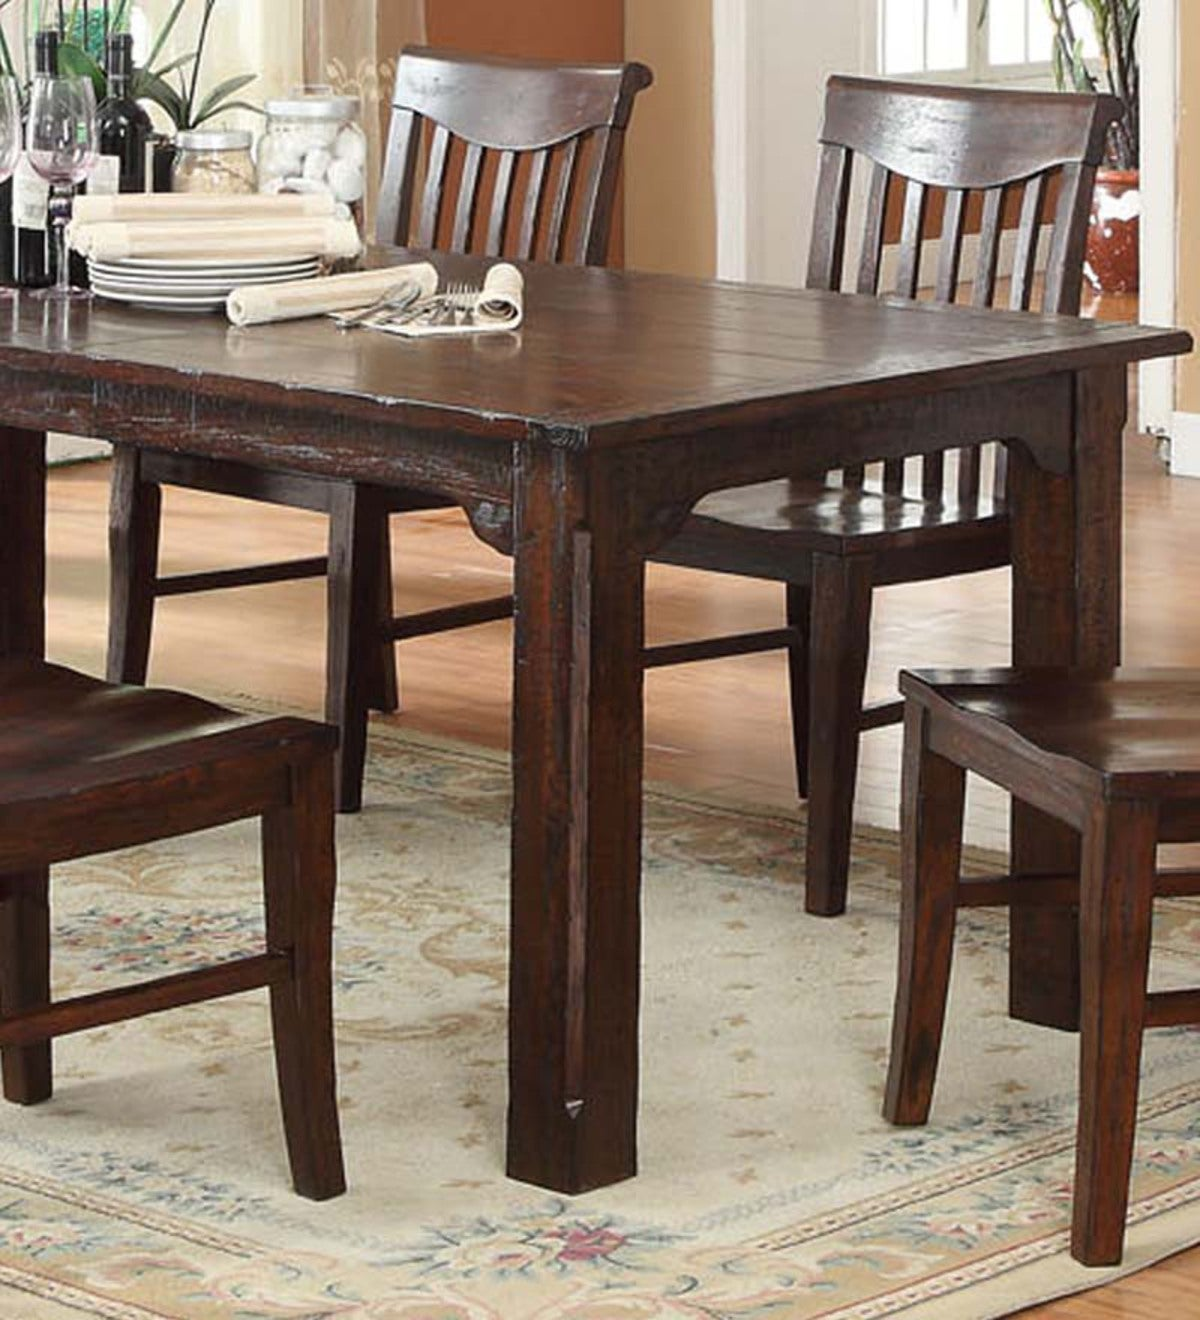 Gettysburg Dining Table and Chairs with Distressed Finish ...